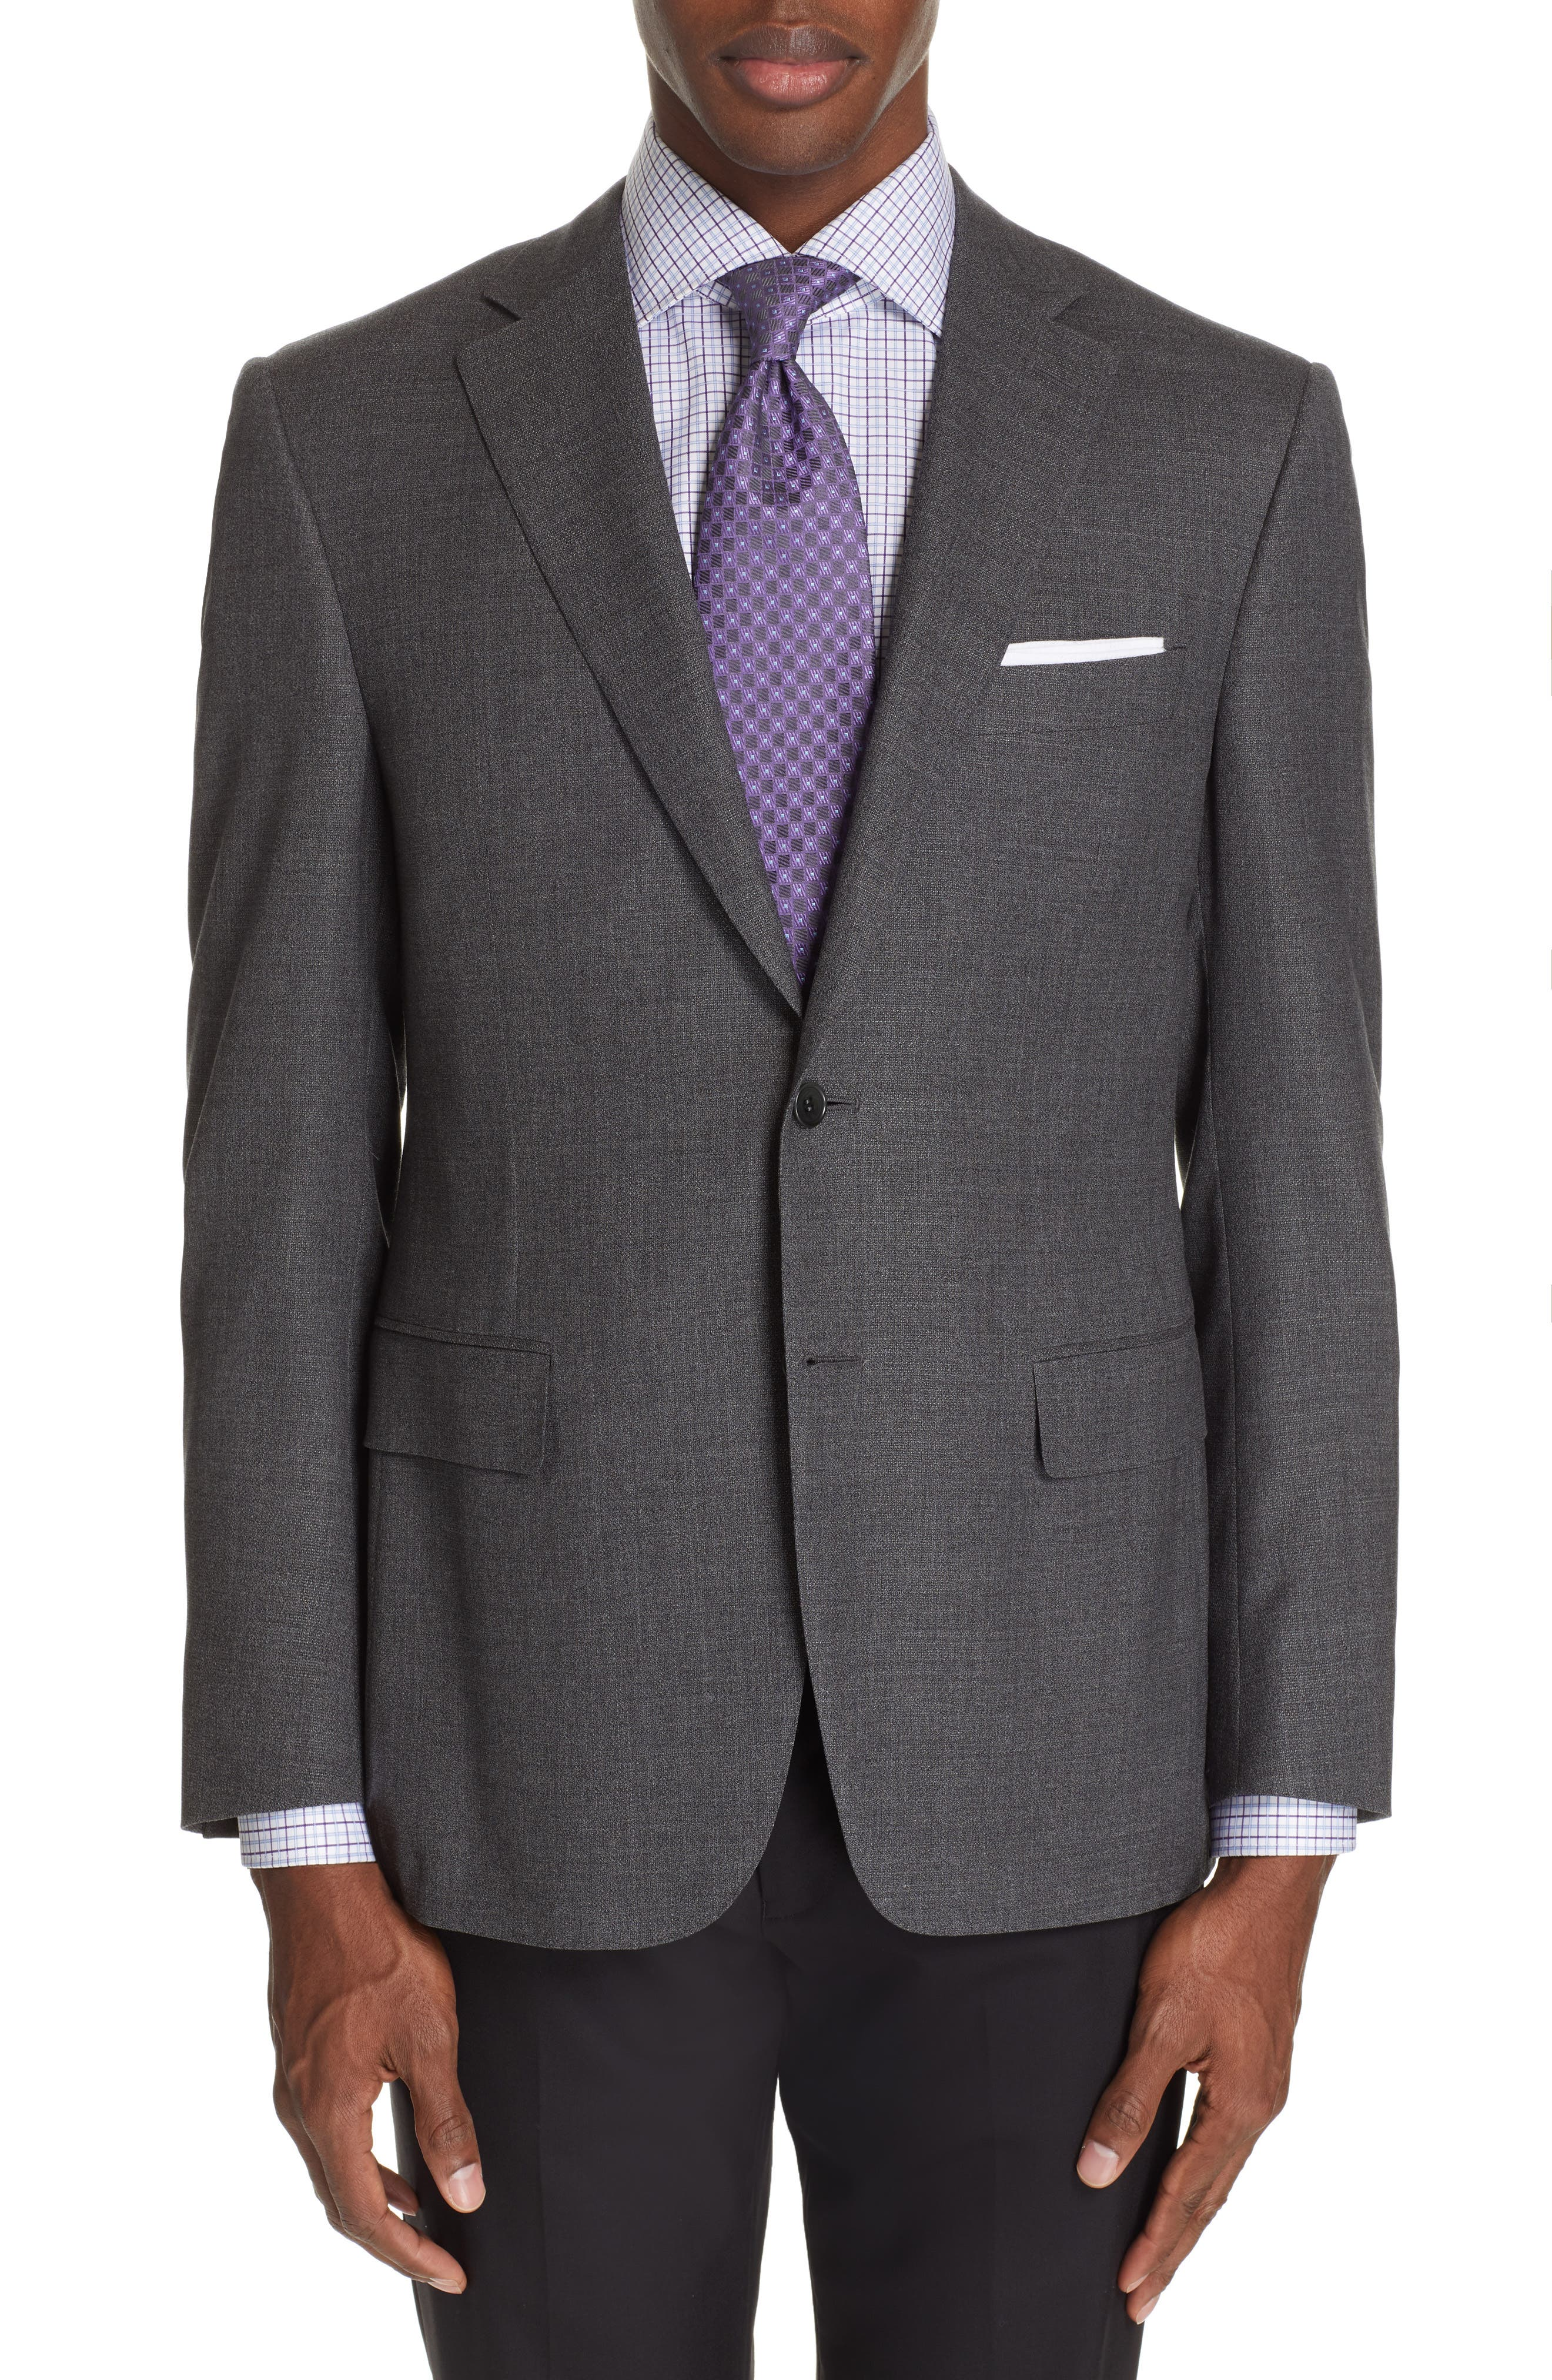 CANALI, Sienna Classic Fit Solid Wool Sport Coat, Main thumbnail 1, color, CHARCOAL